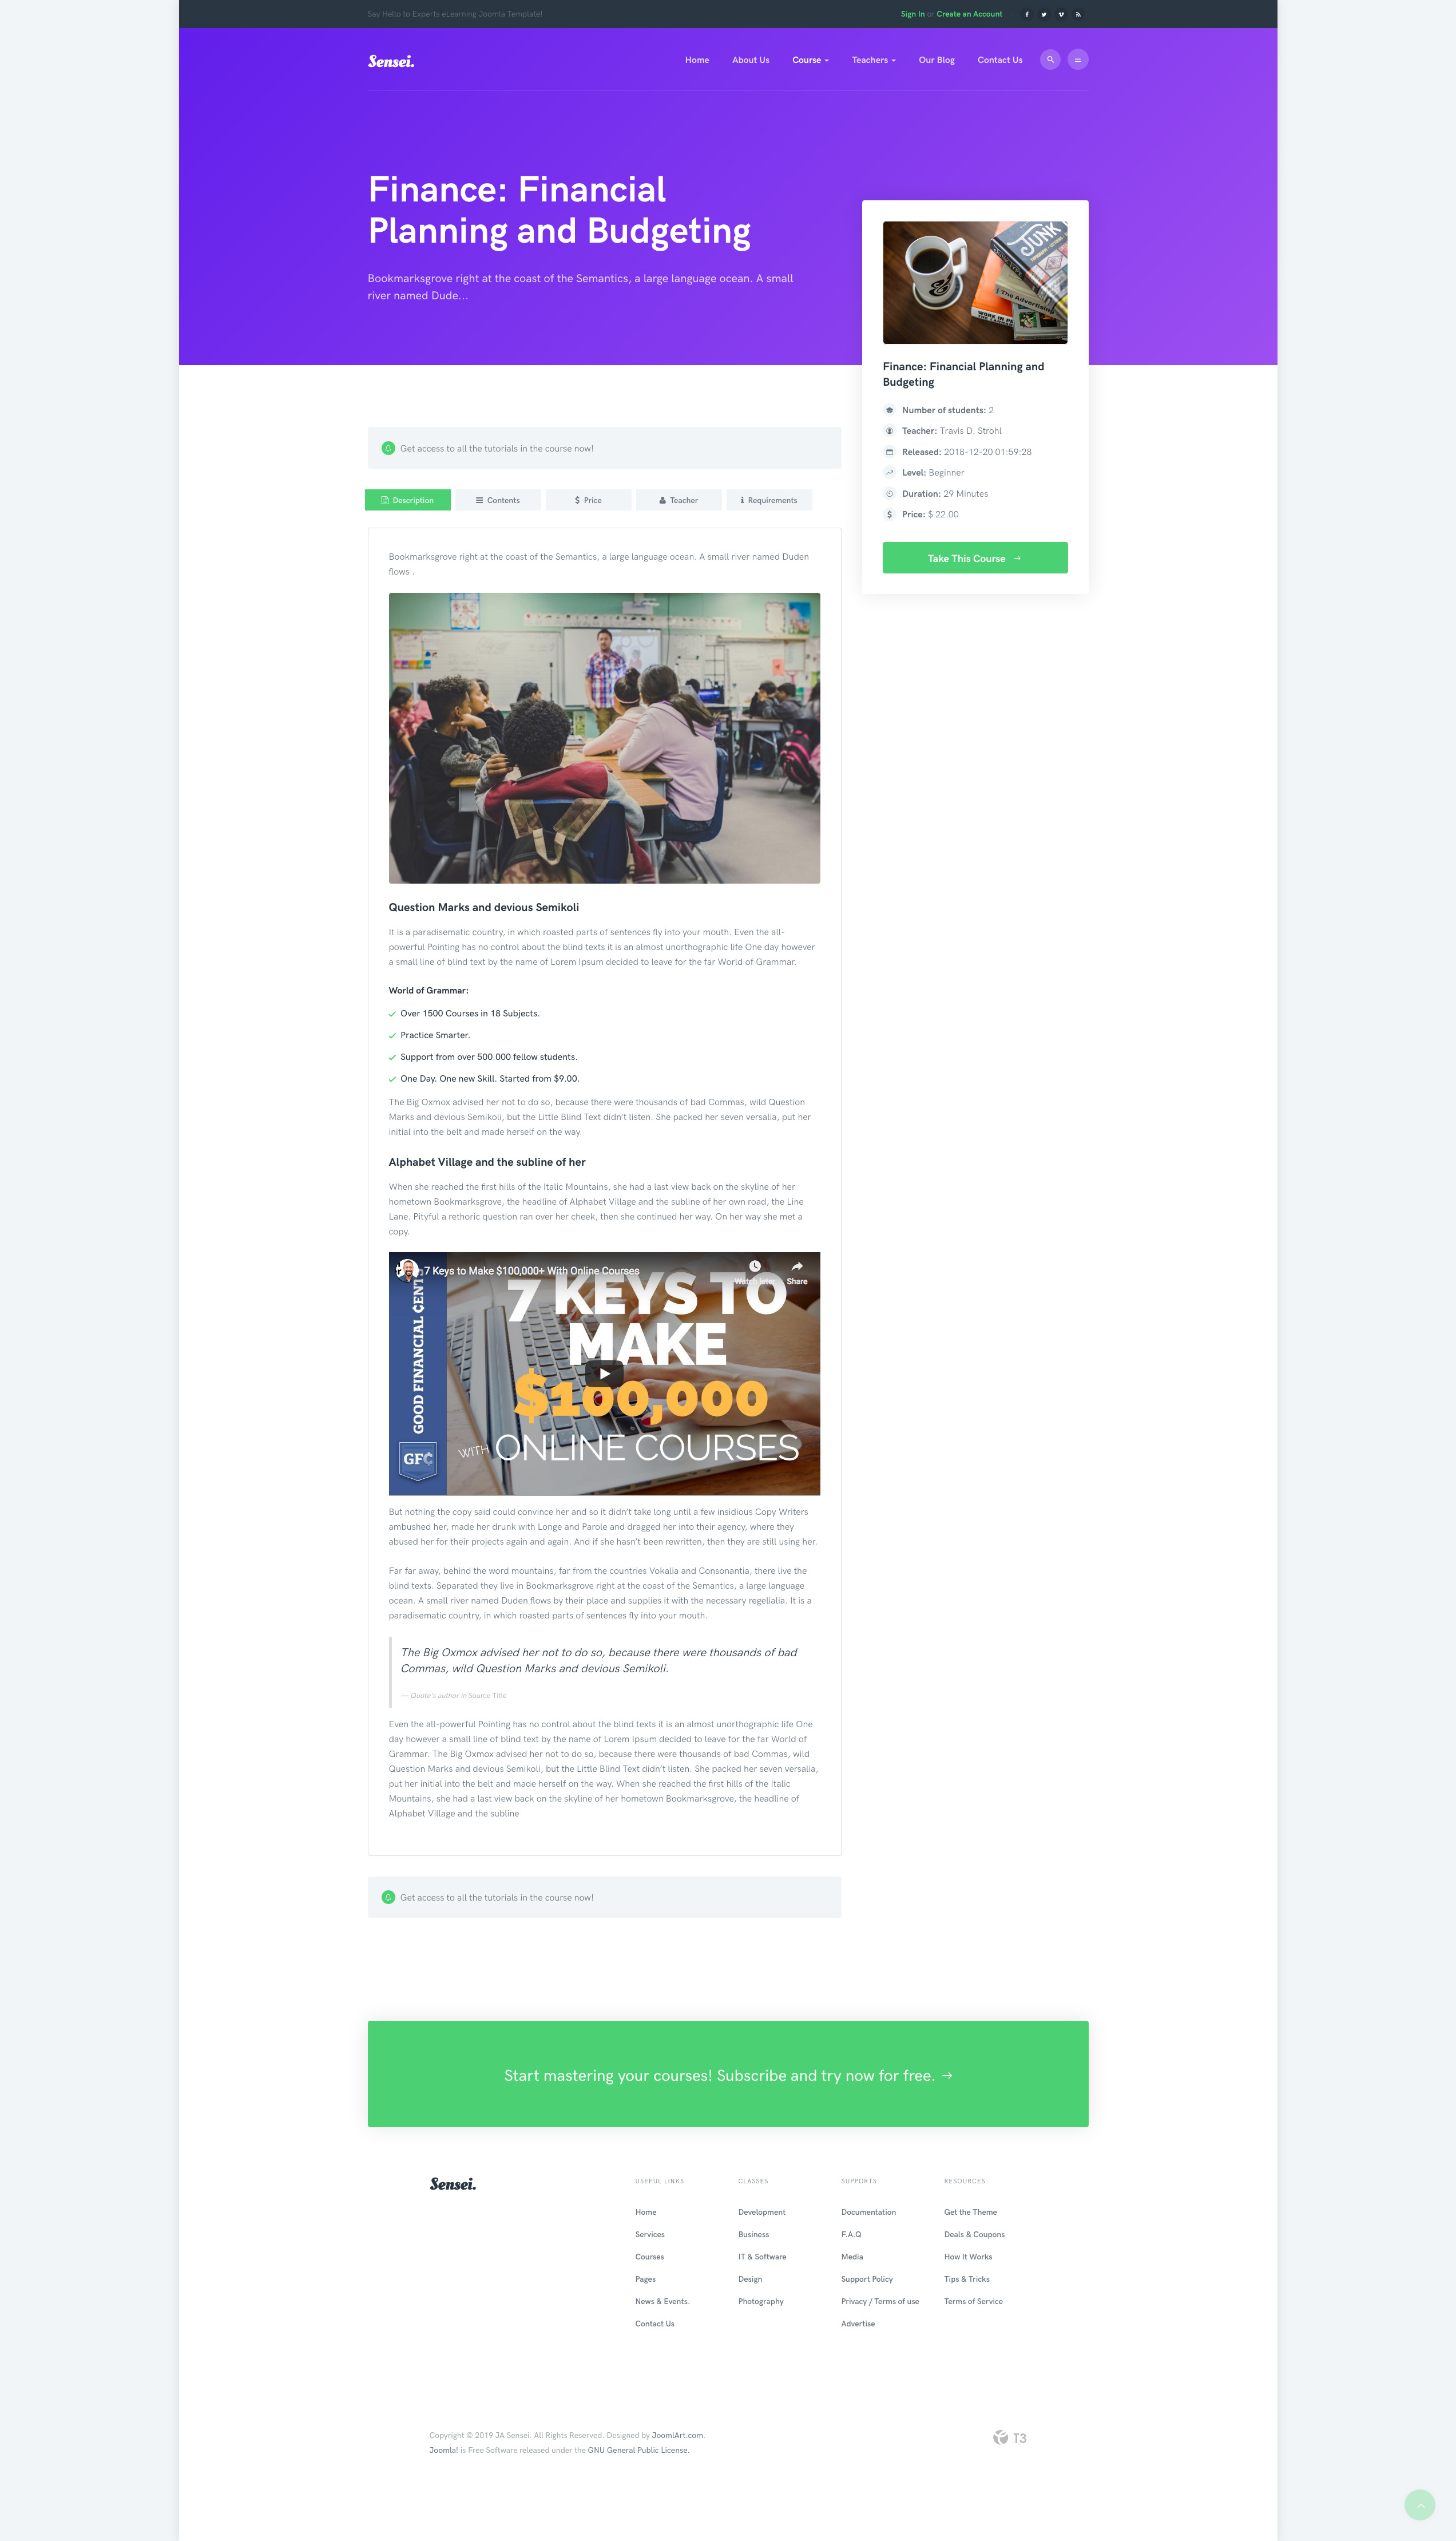 PREVIEW] JA Sensei Education Joomla template with LMS and